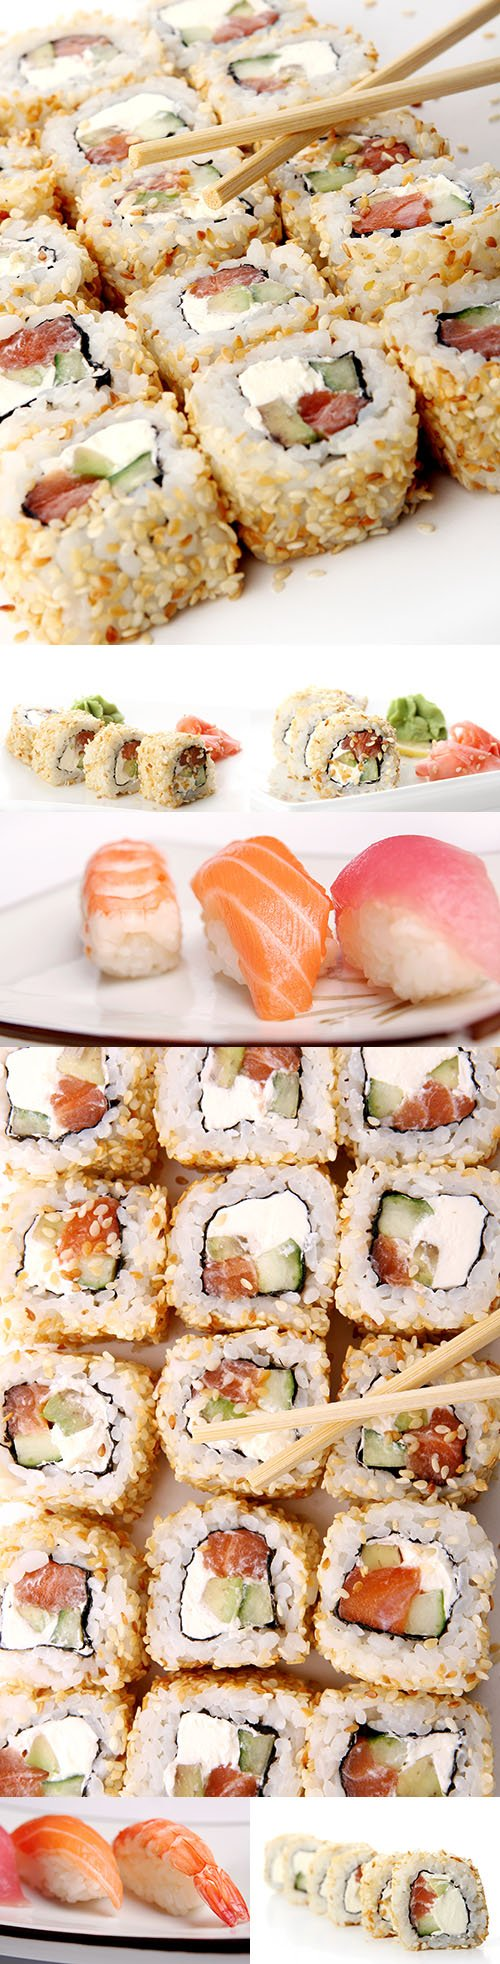 Fresh and delicious sushi rolls Japanese cuisine